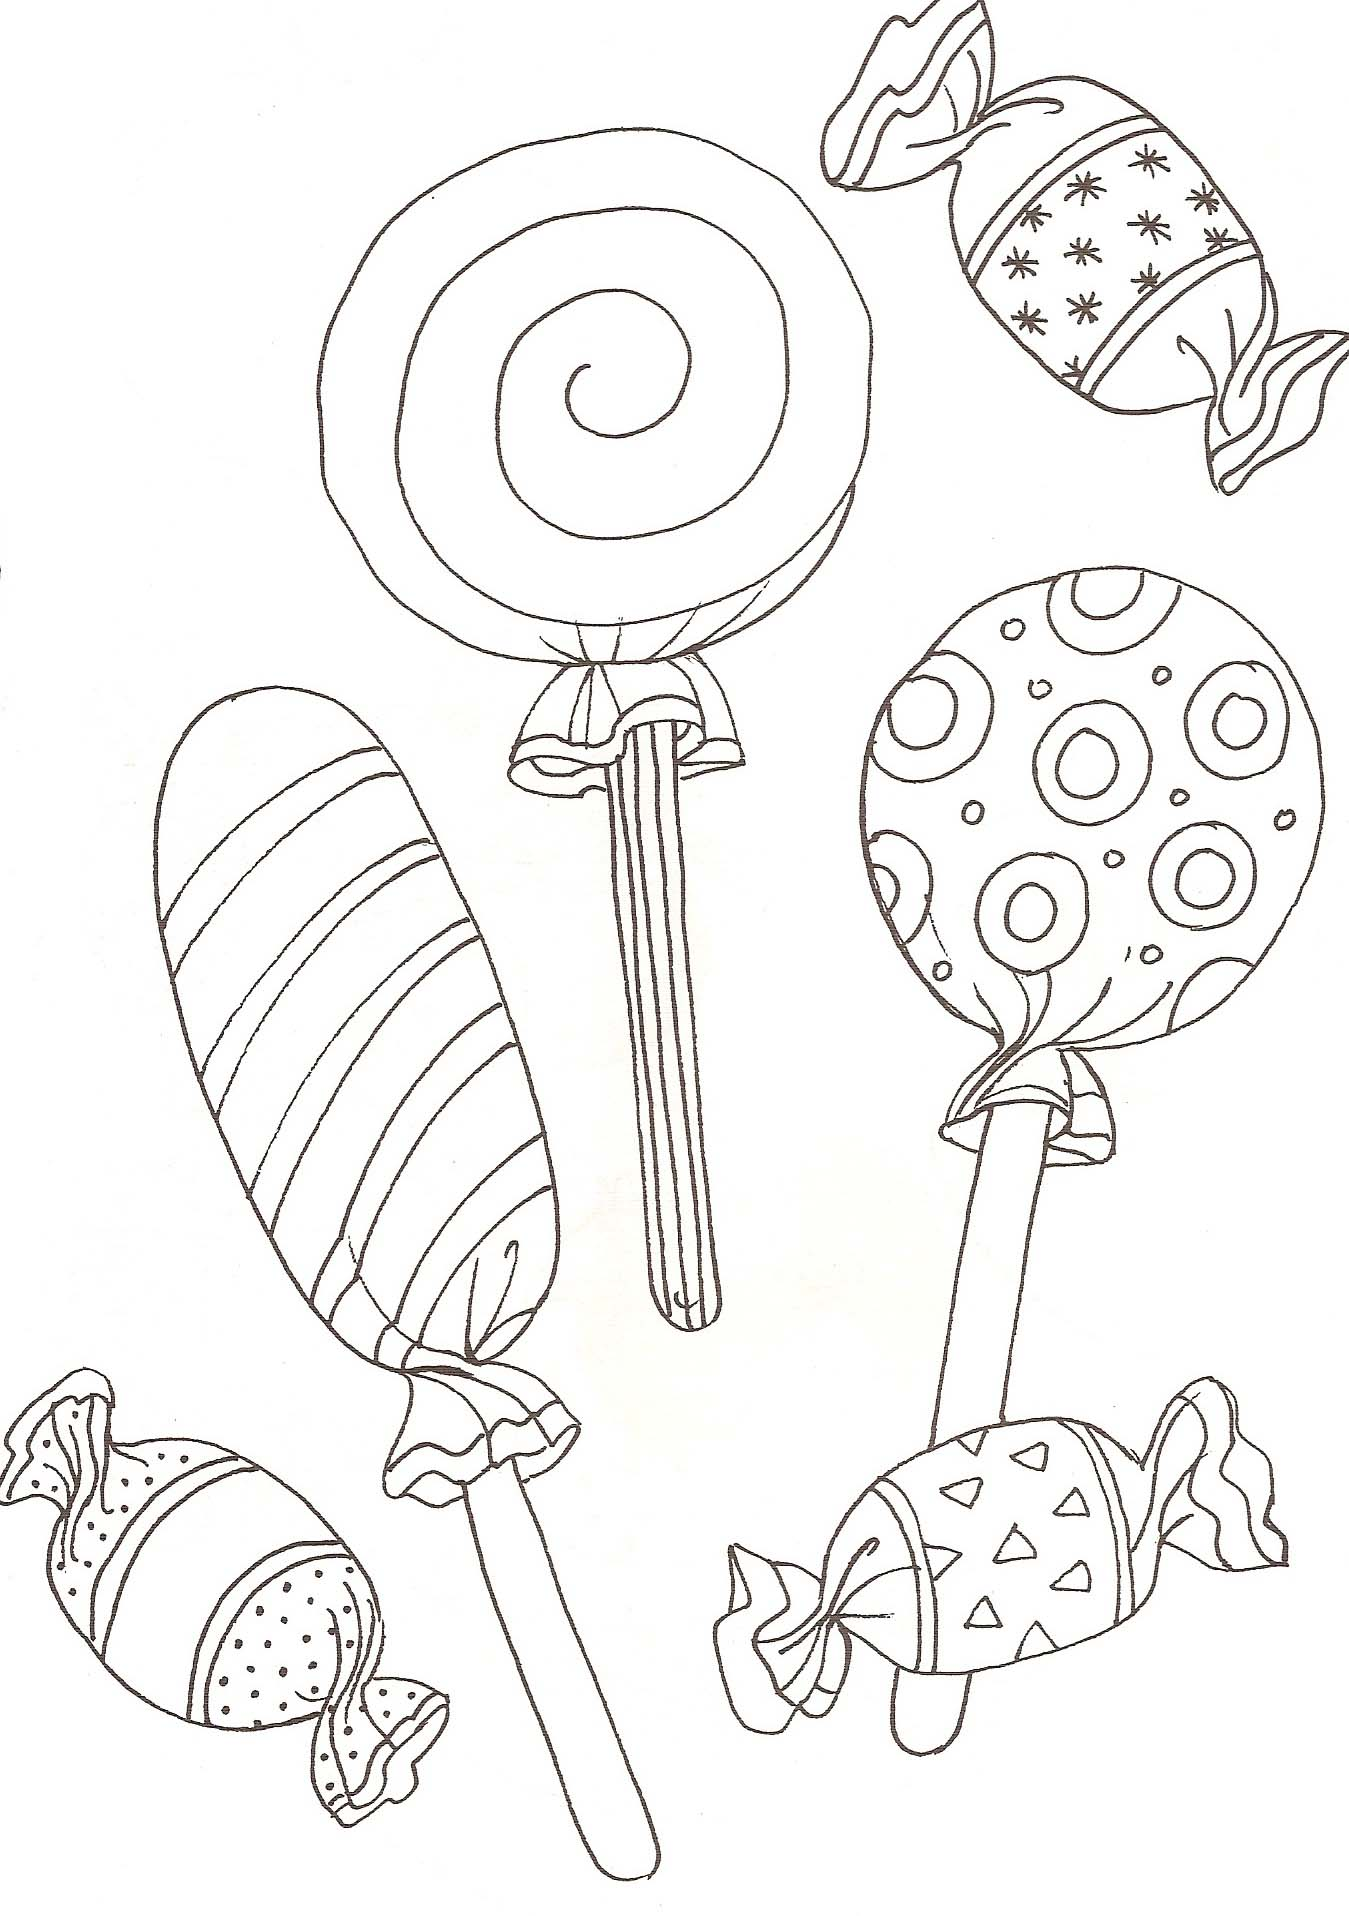 Coloriage Bonbon Halloween.Coloriages Bonbons